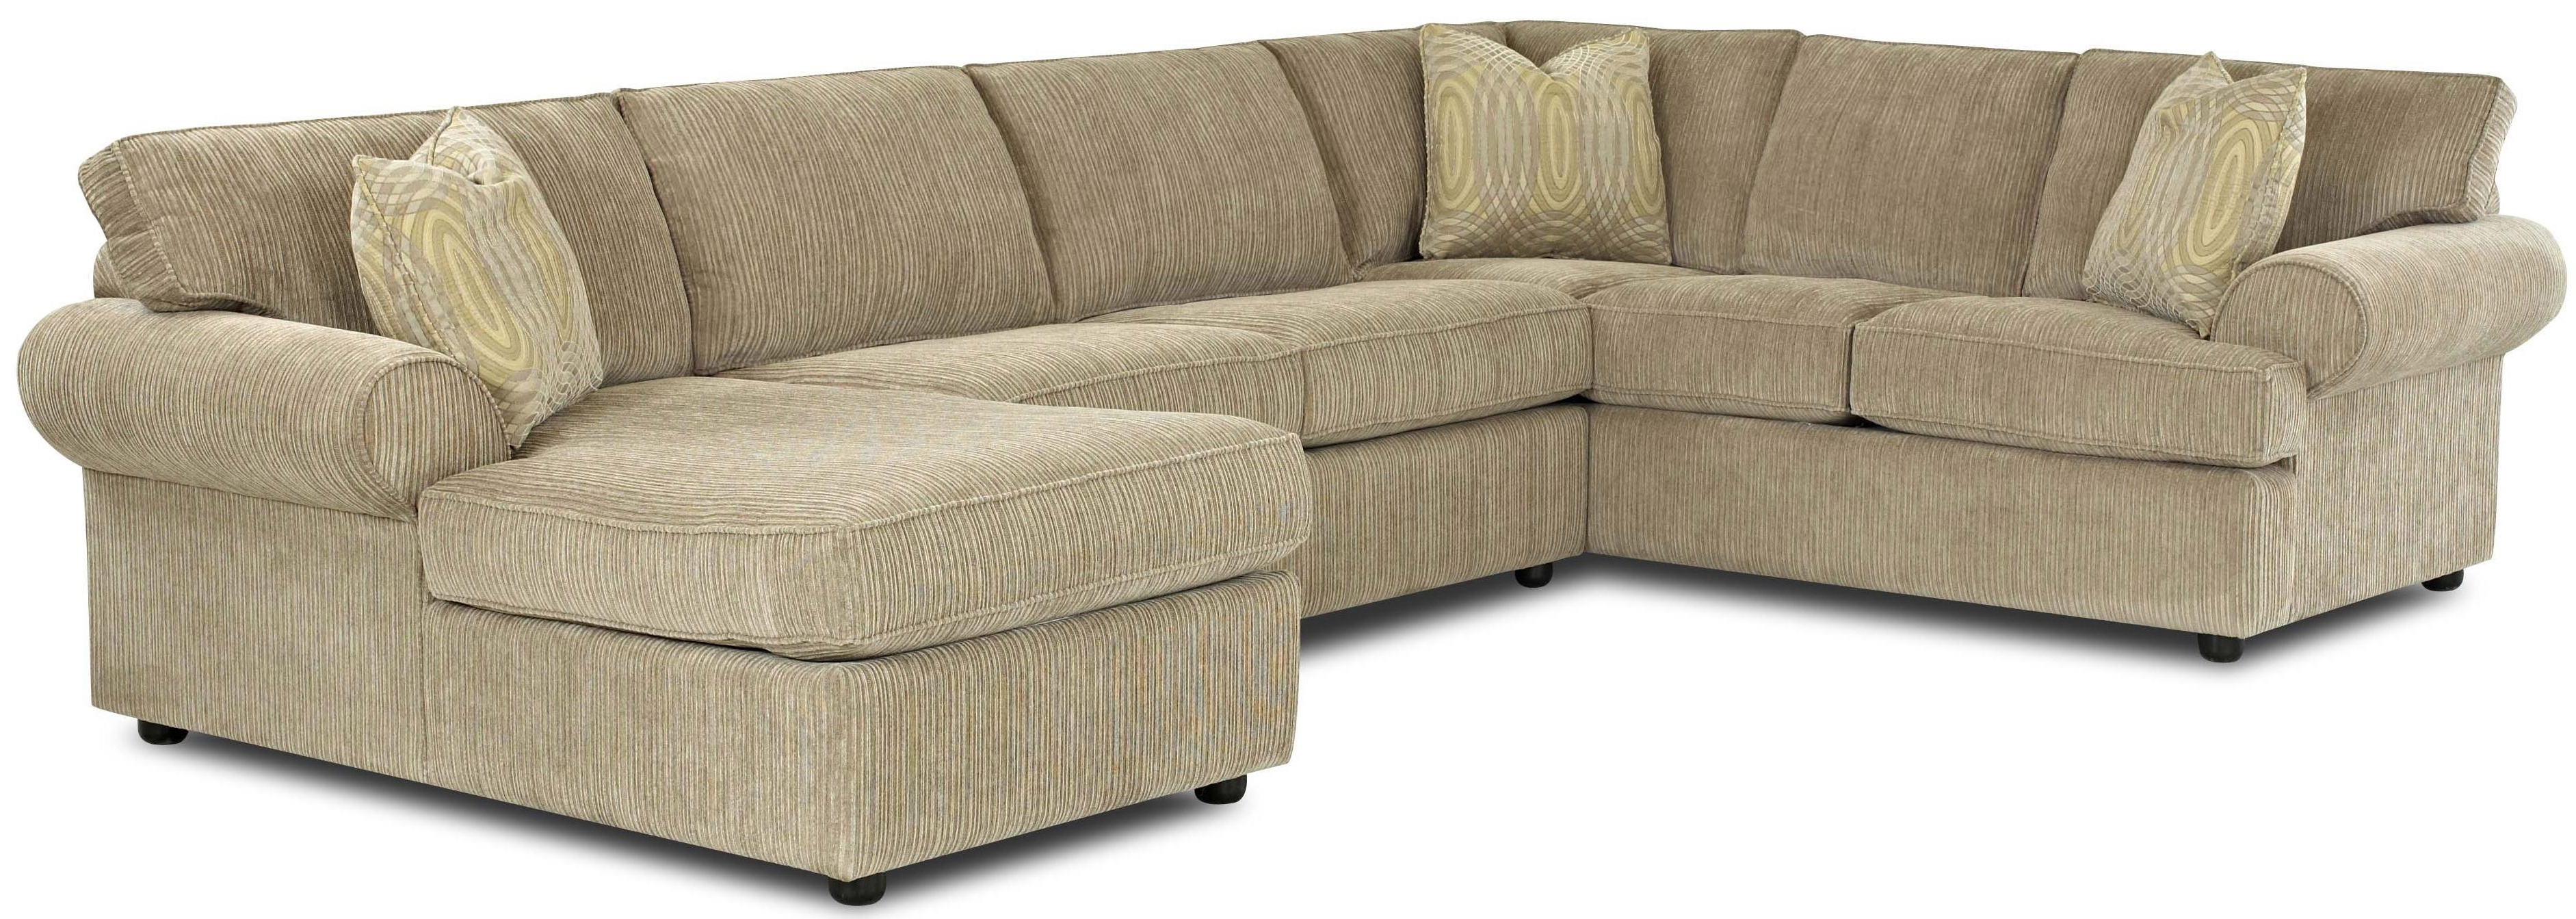 Sectional Chaises Within Most Popular Sectional Sofa Design: Amazing Chaise Sofa Sectional Sectional (View 10 of 15)